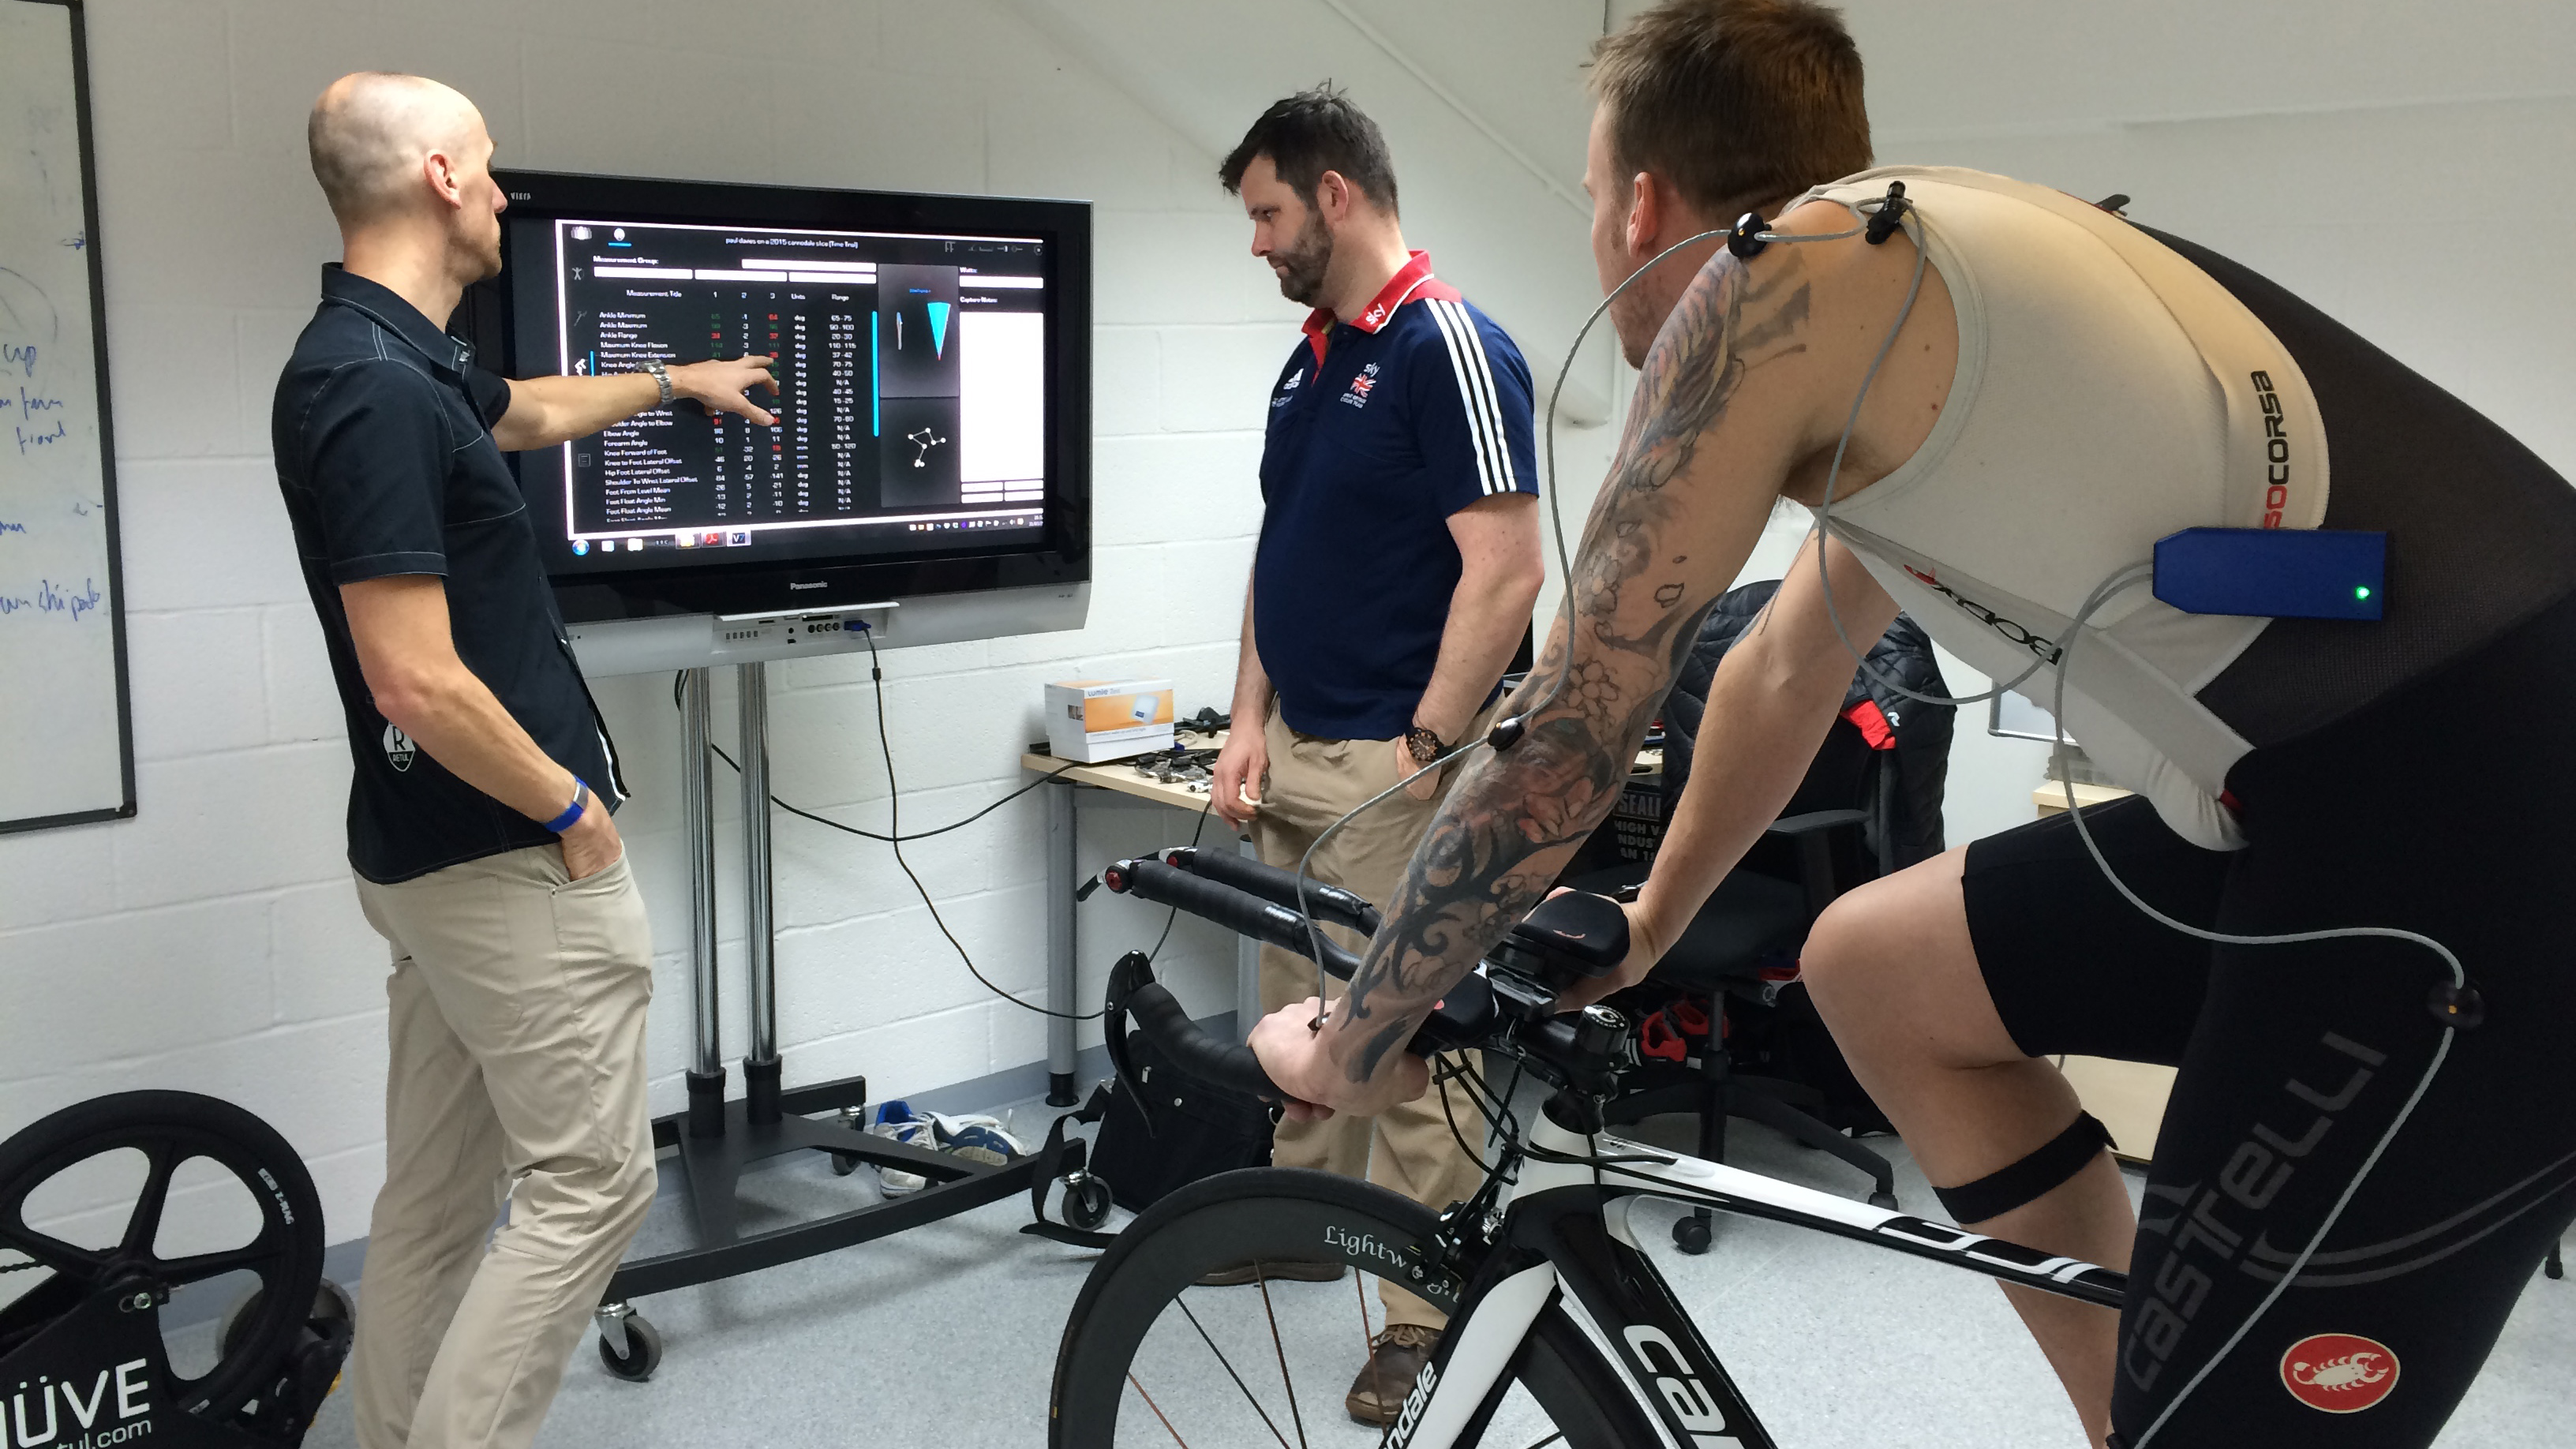 Paul joined the experts at the National Cycling Centre in Manchester